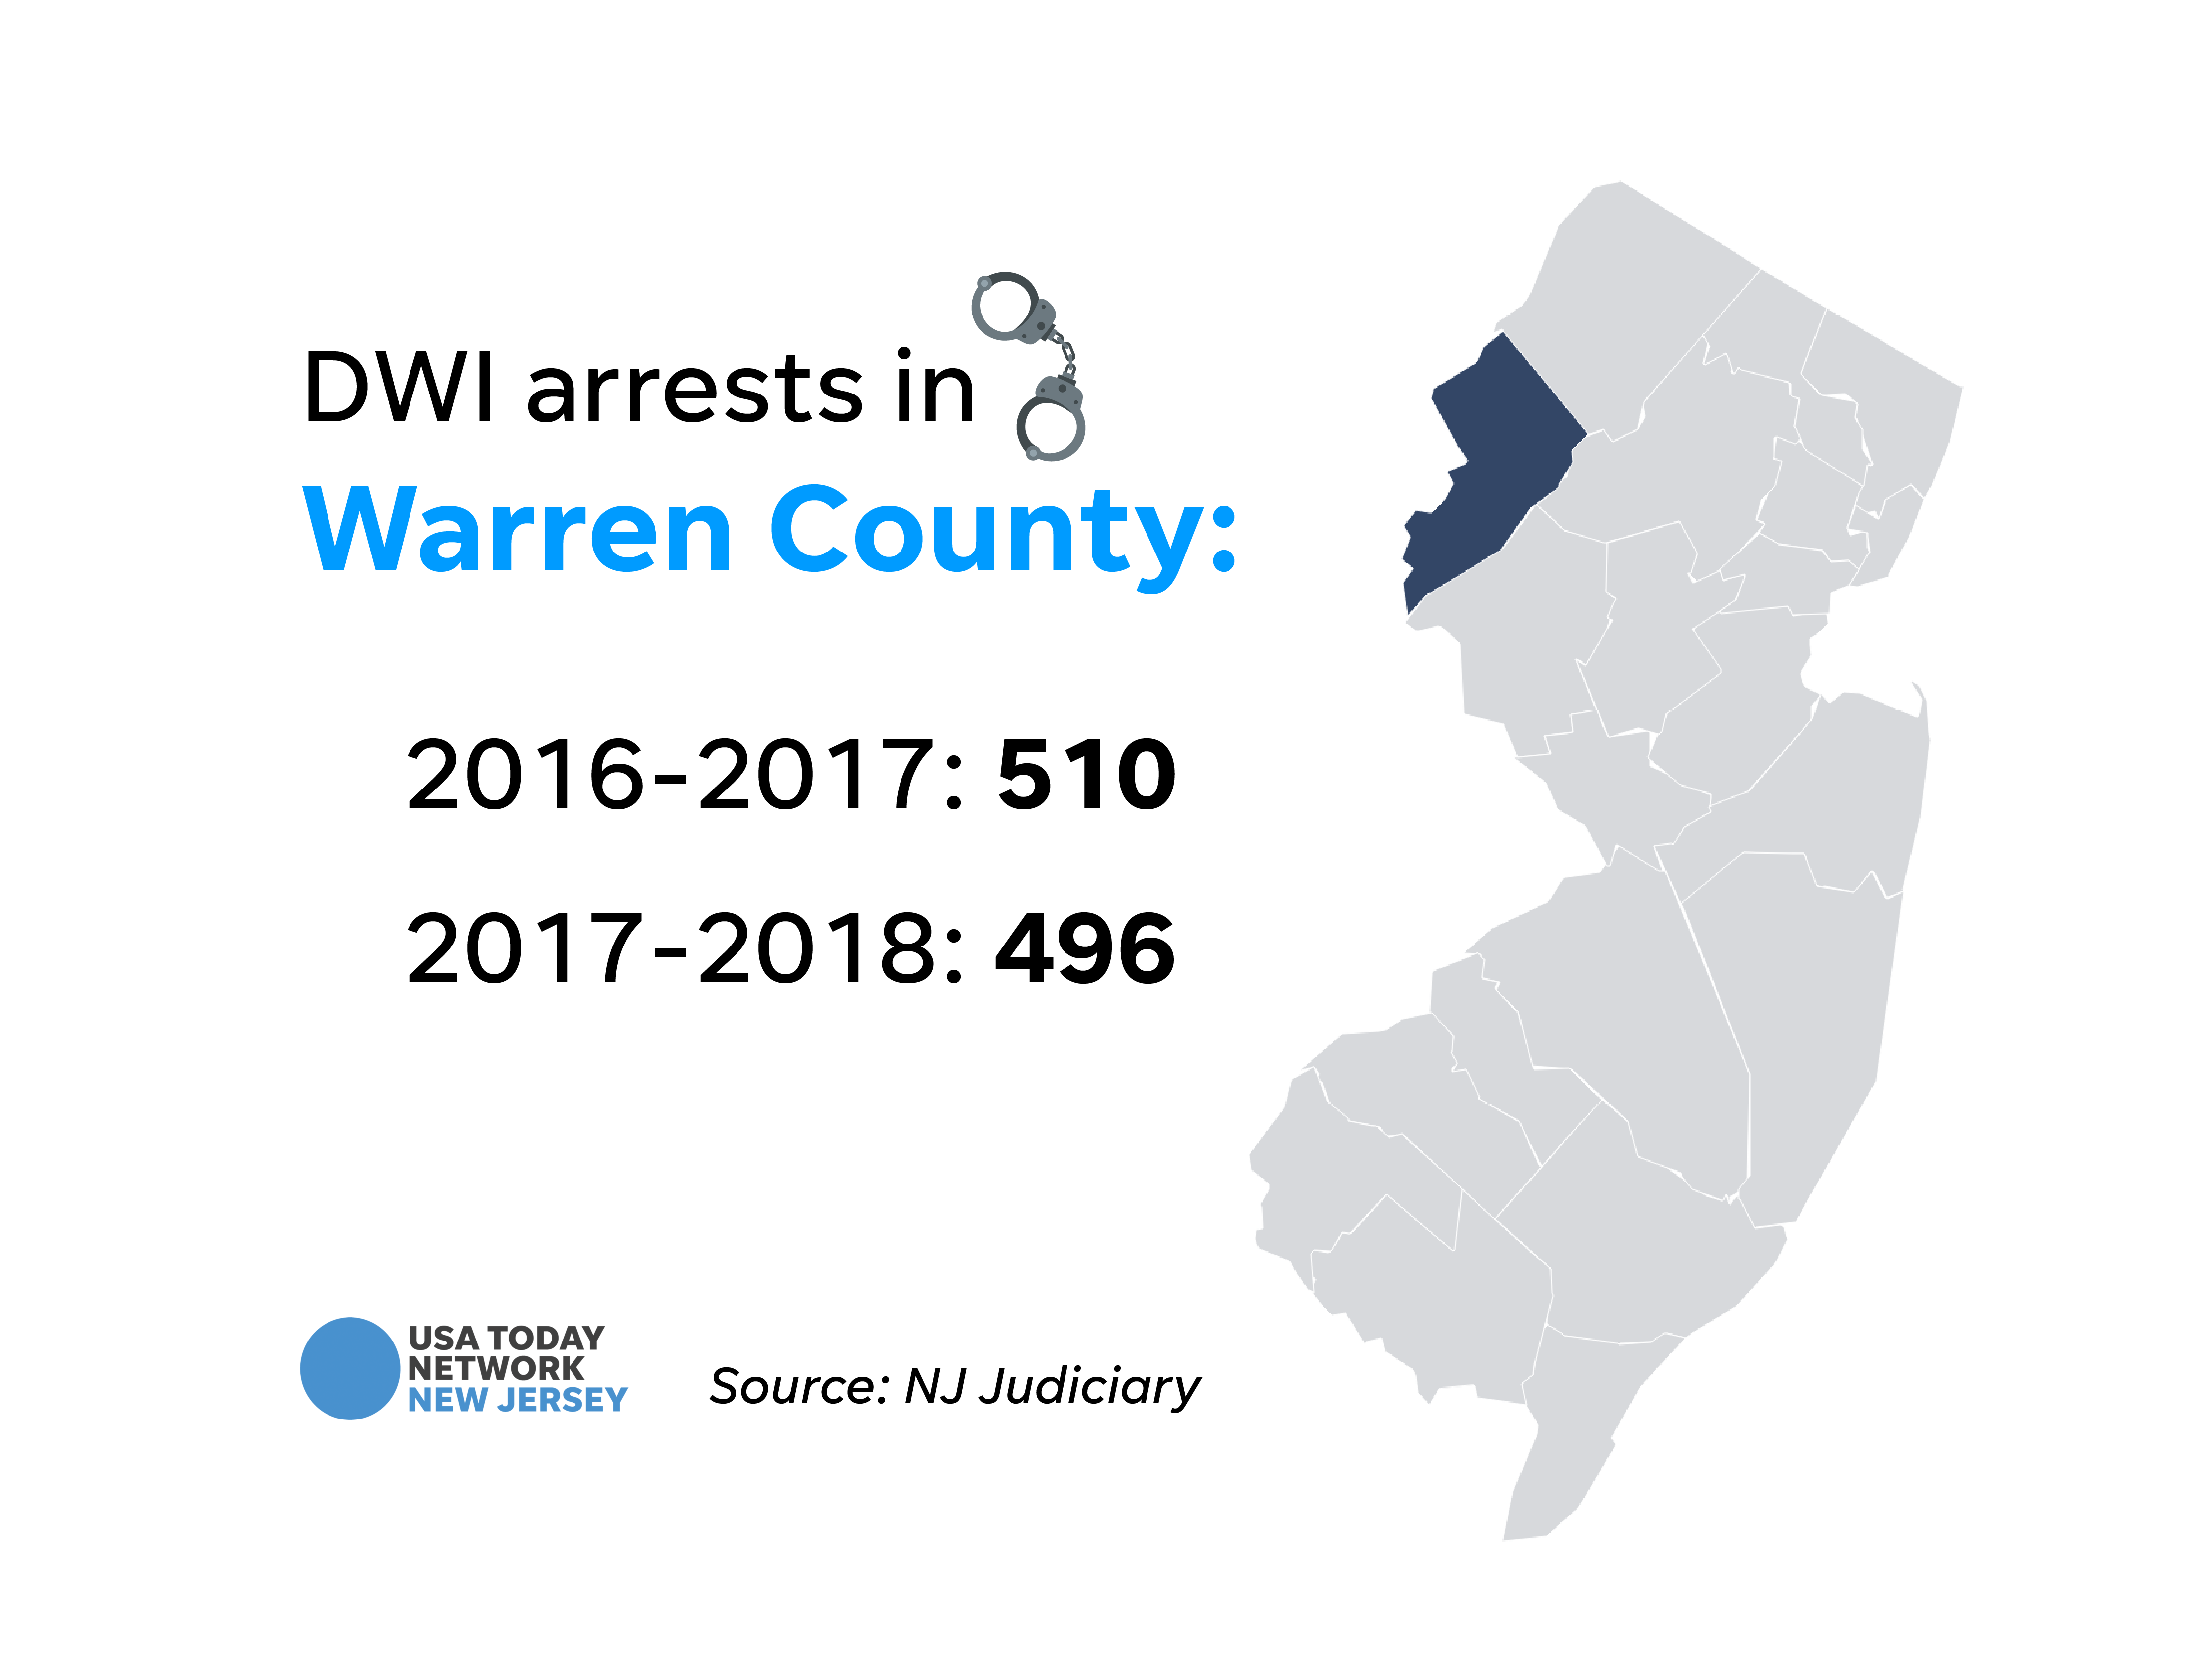 DWI arrests in Warren County.